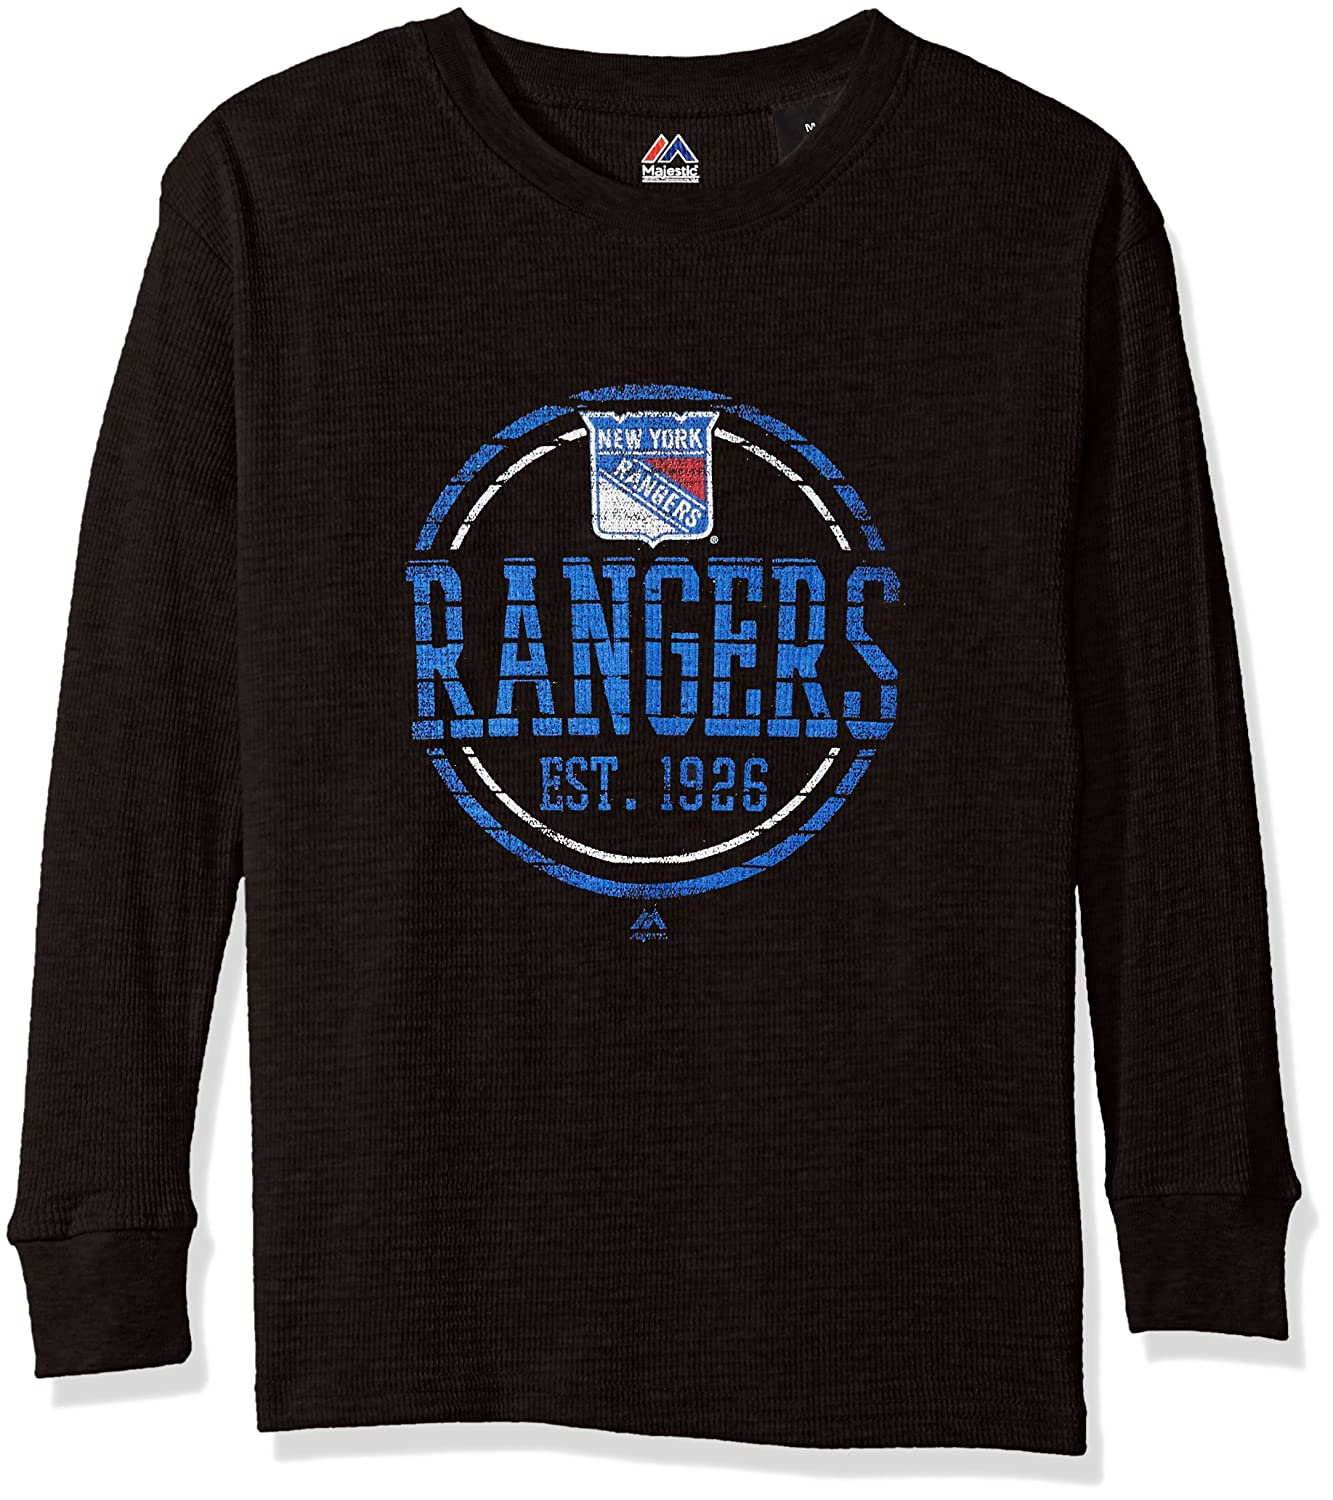 特別価格 (New York Rangers, NHL Large) - NHL Youth (New Thermal Tee B01M0OG3JJ B01M0OG3JJ, モンキーパンツ:cd77f71c --- a0267596.xsph.ru